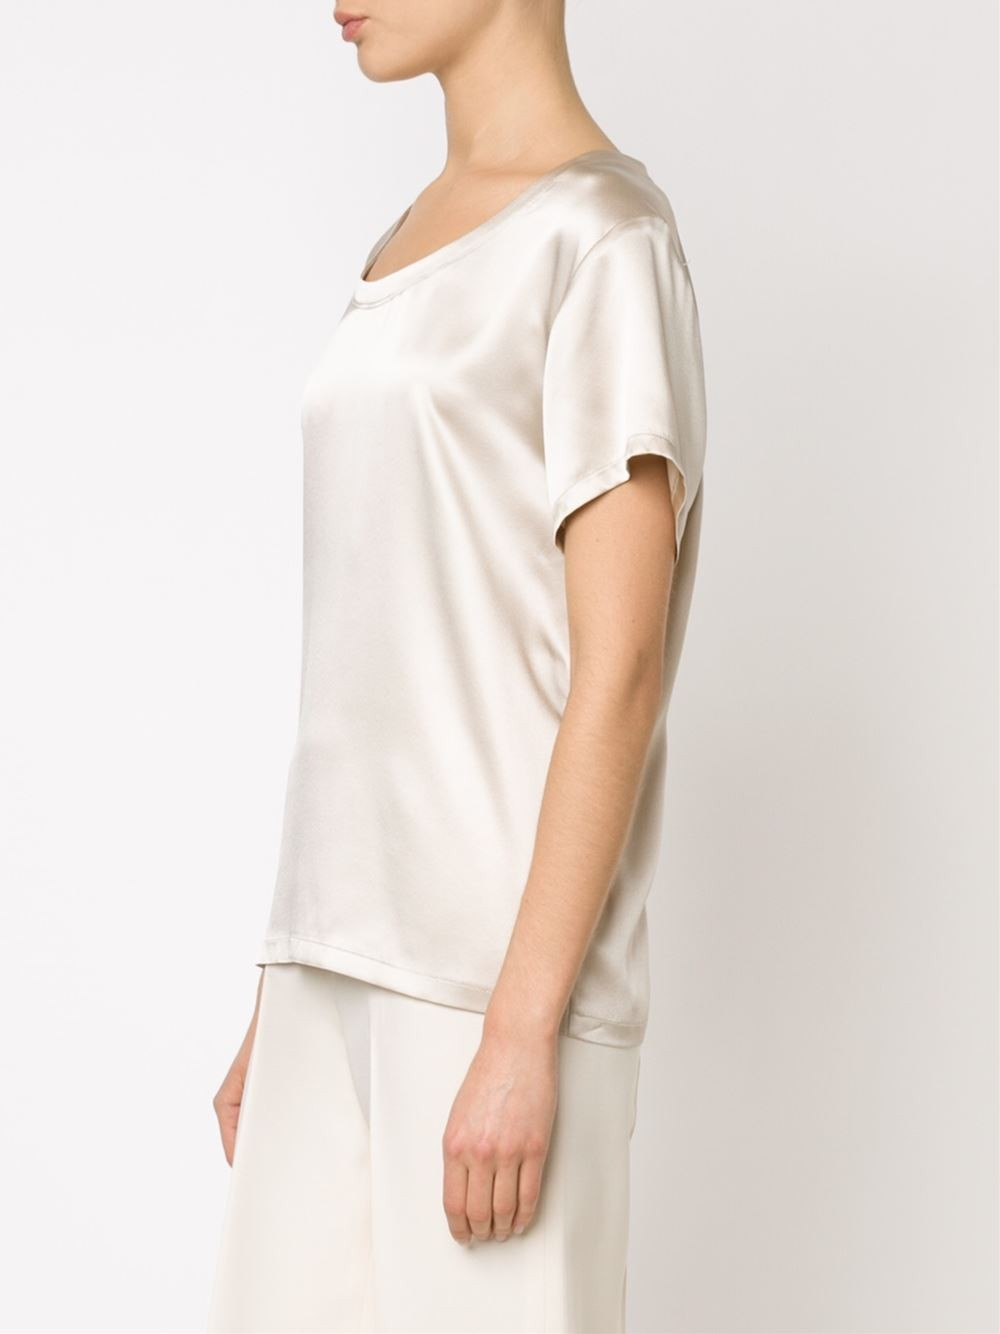 Adam lippes classic t shirt blouse in white lyst for Adam lippes t shirt